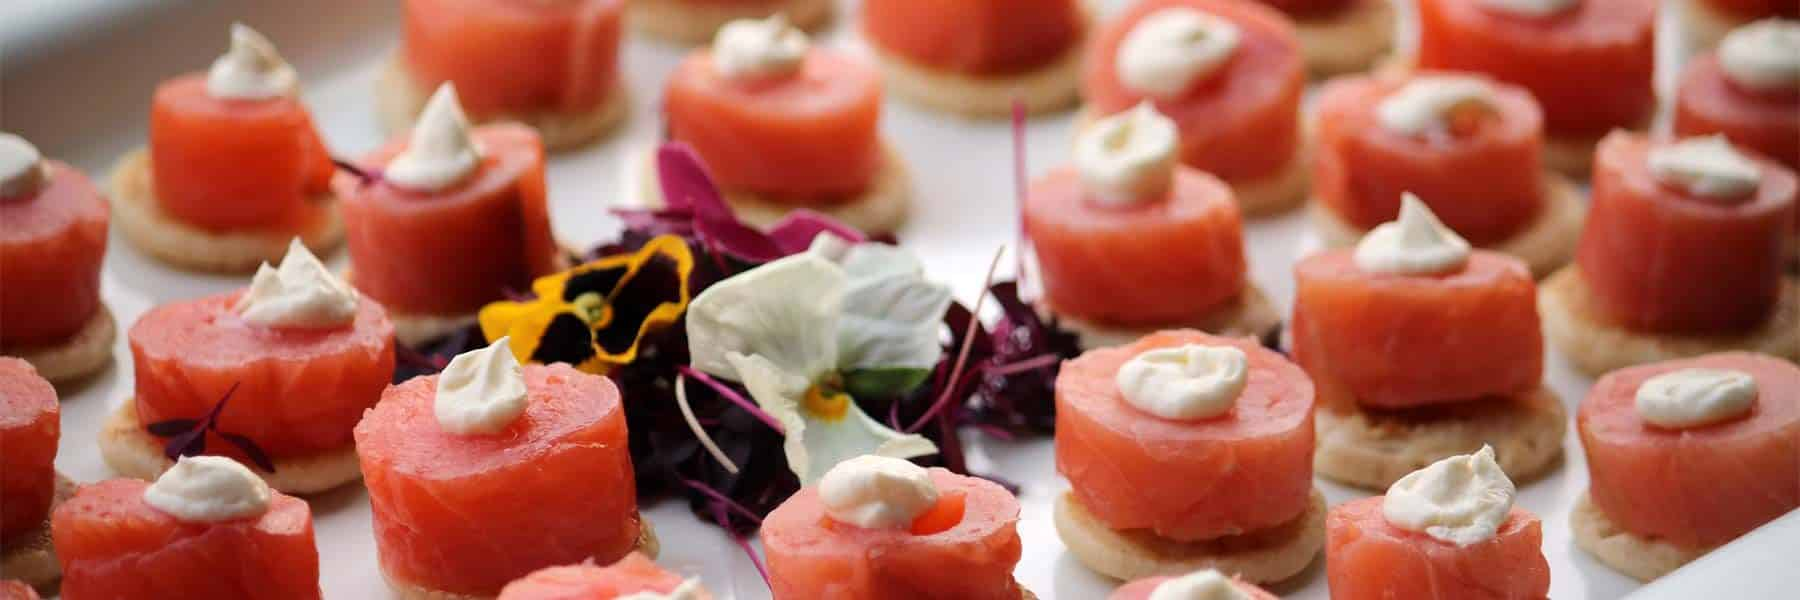 Smoked Salmon & Cream Cheese Blini